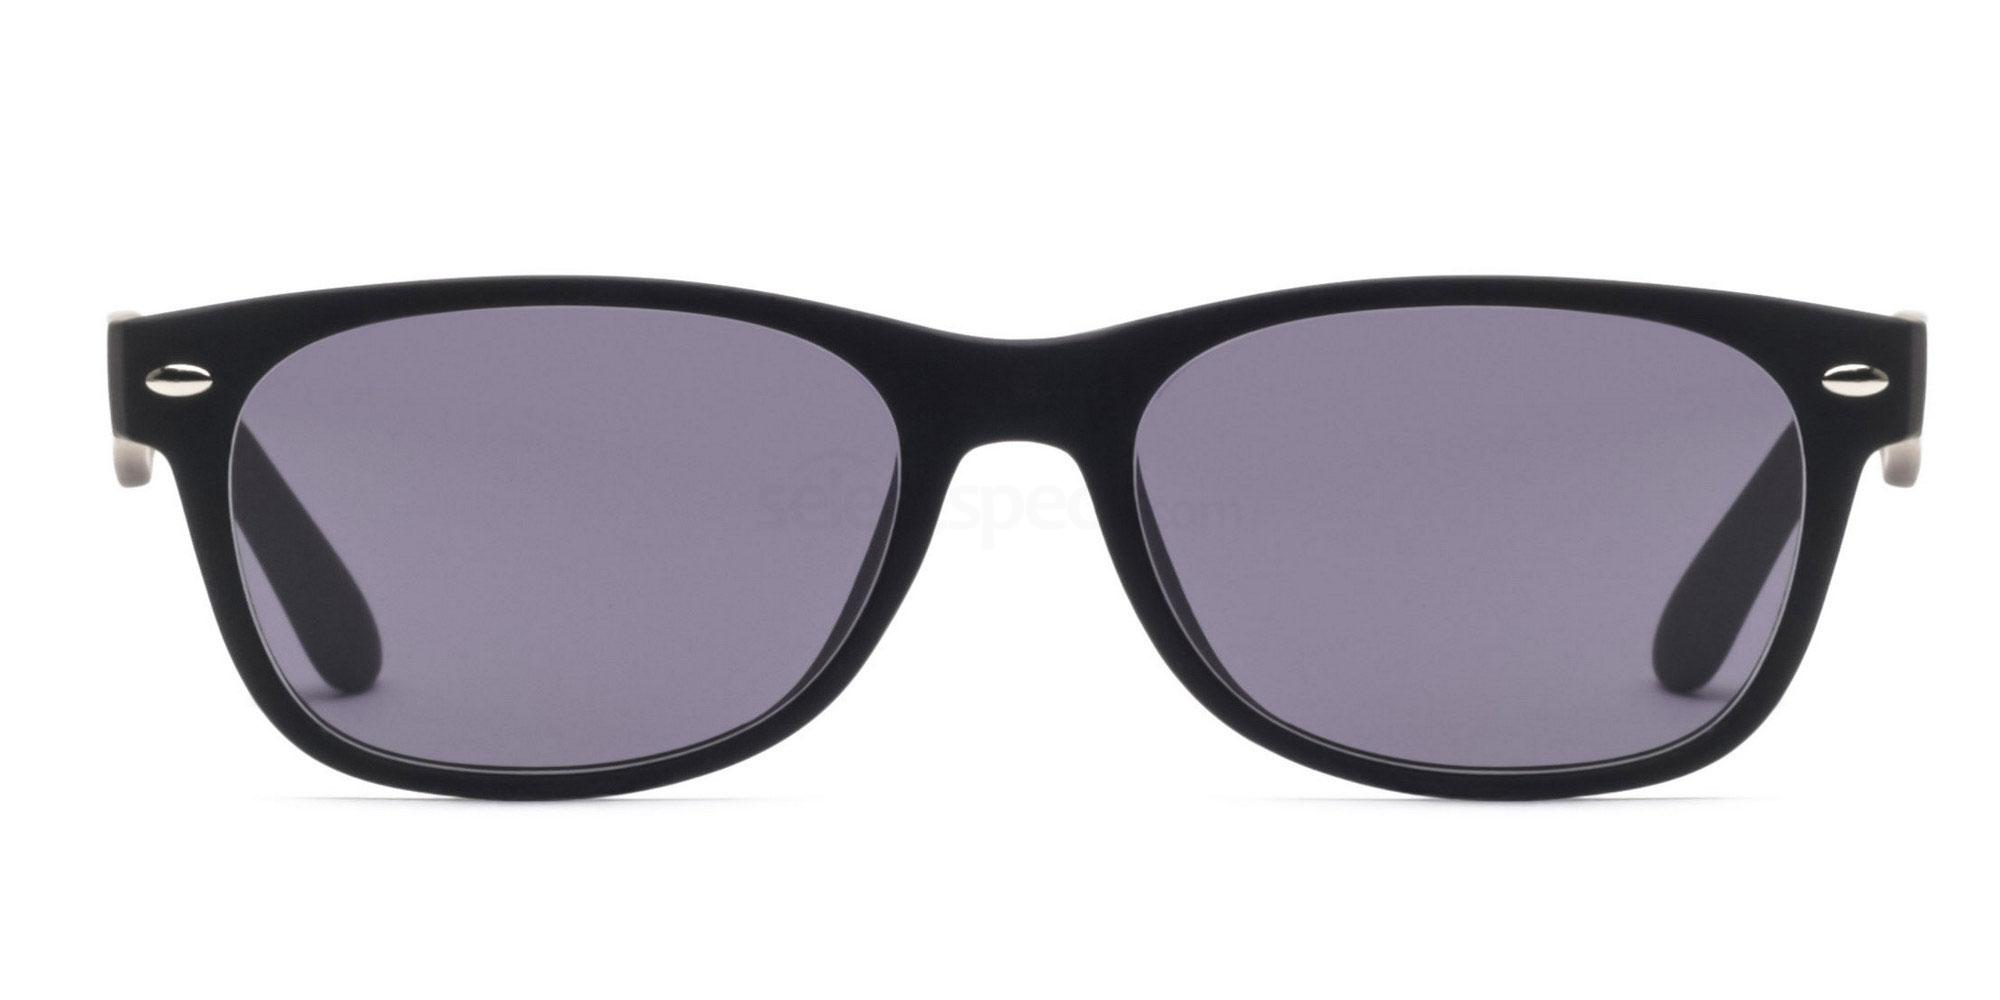 Black S8122 - Black (Sunglasses) Sunglasses, Savannah